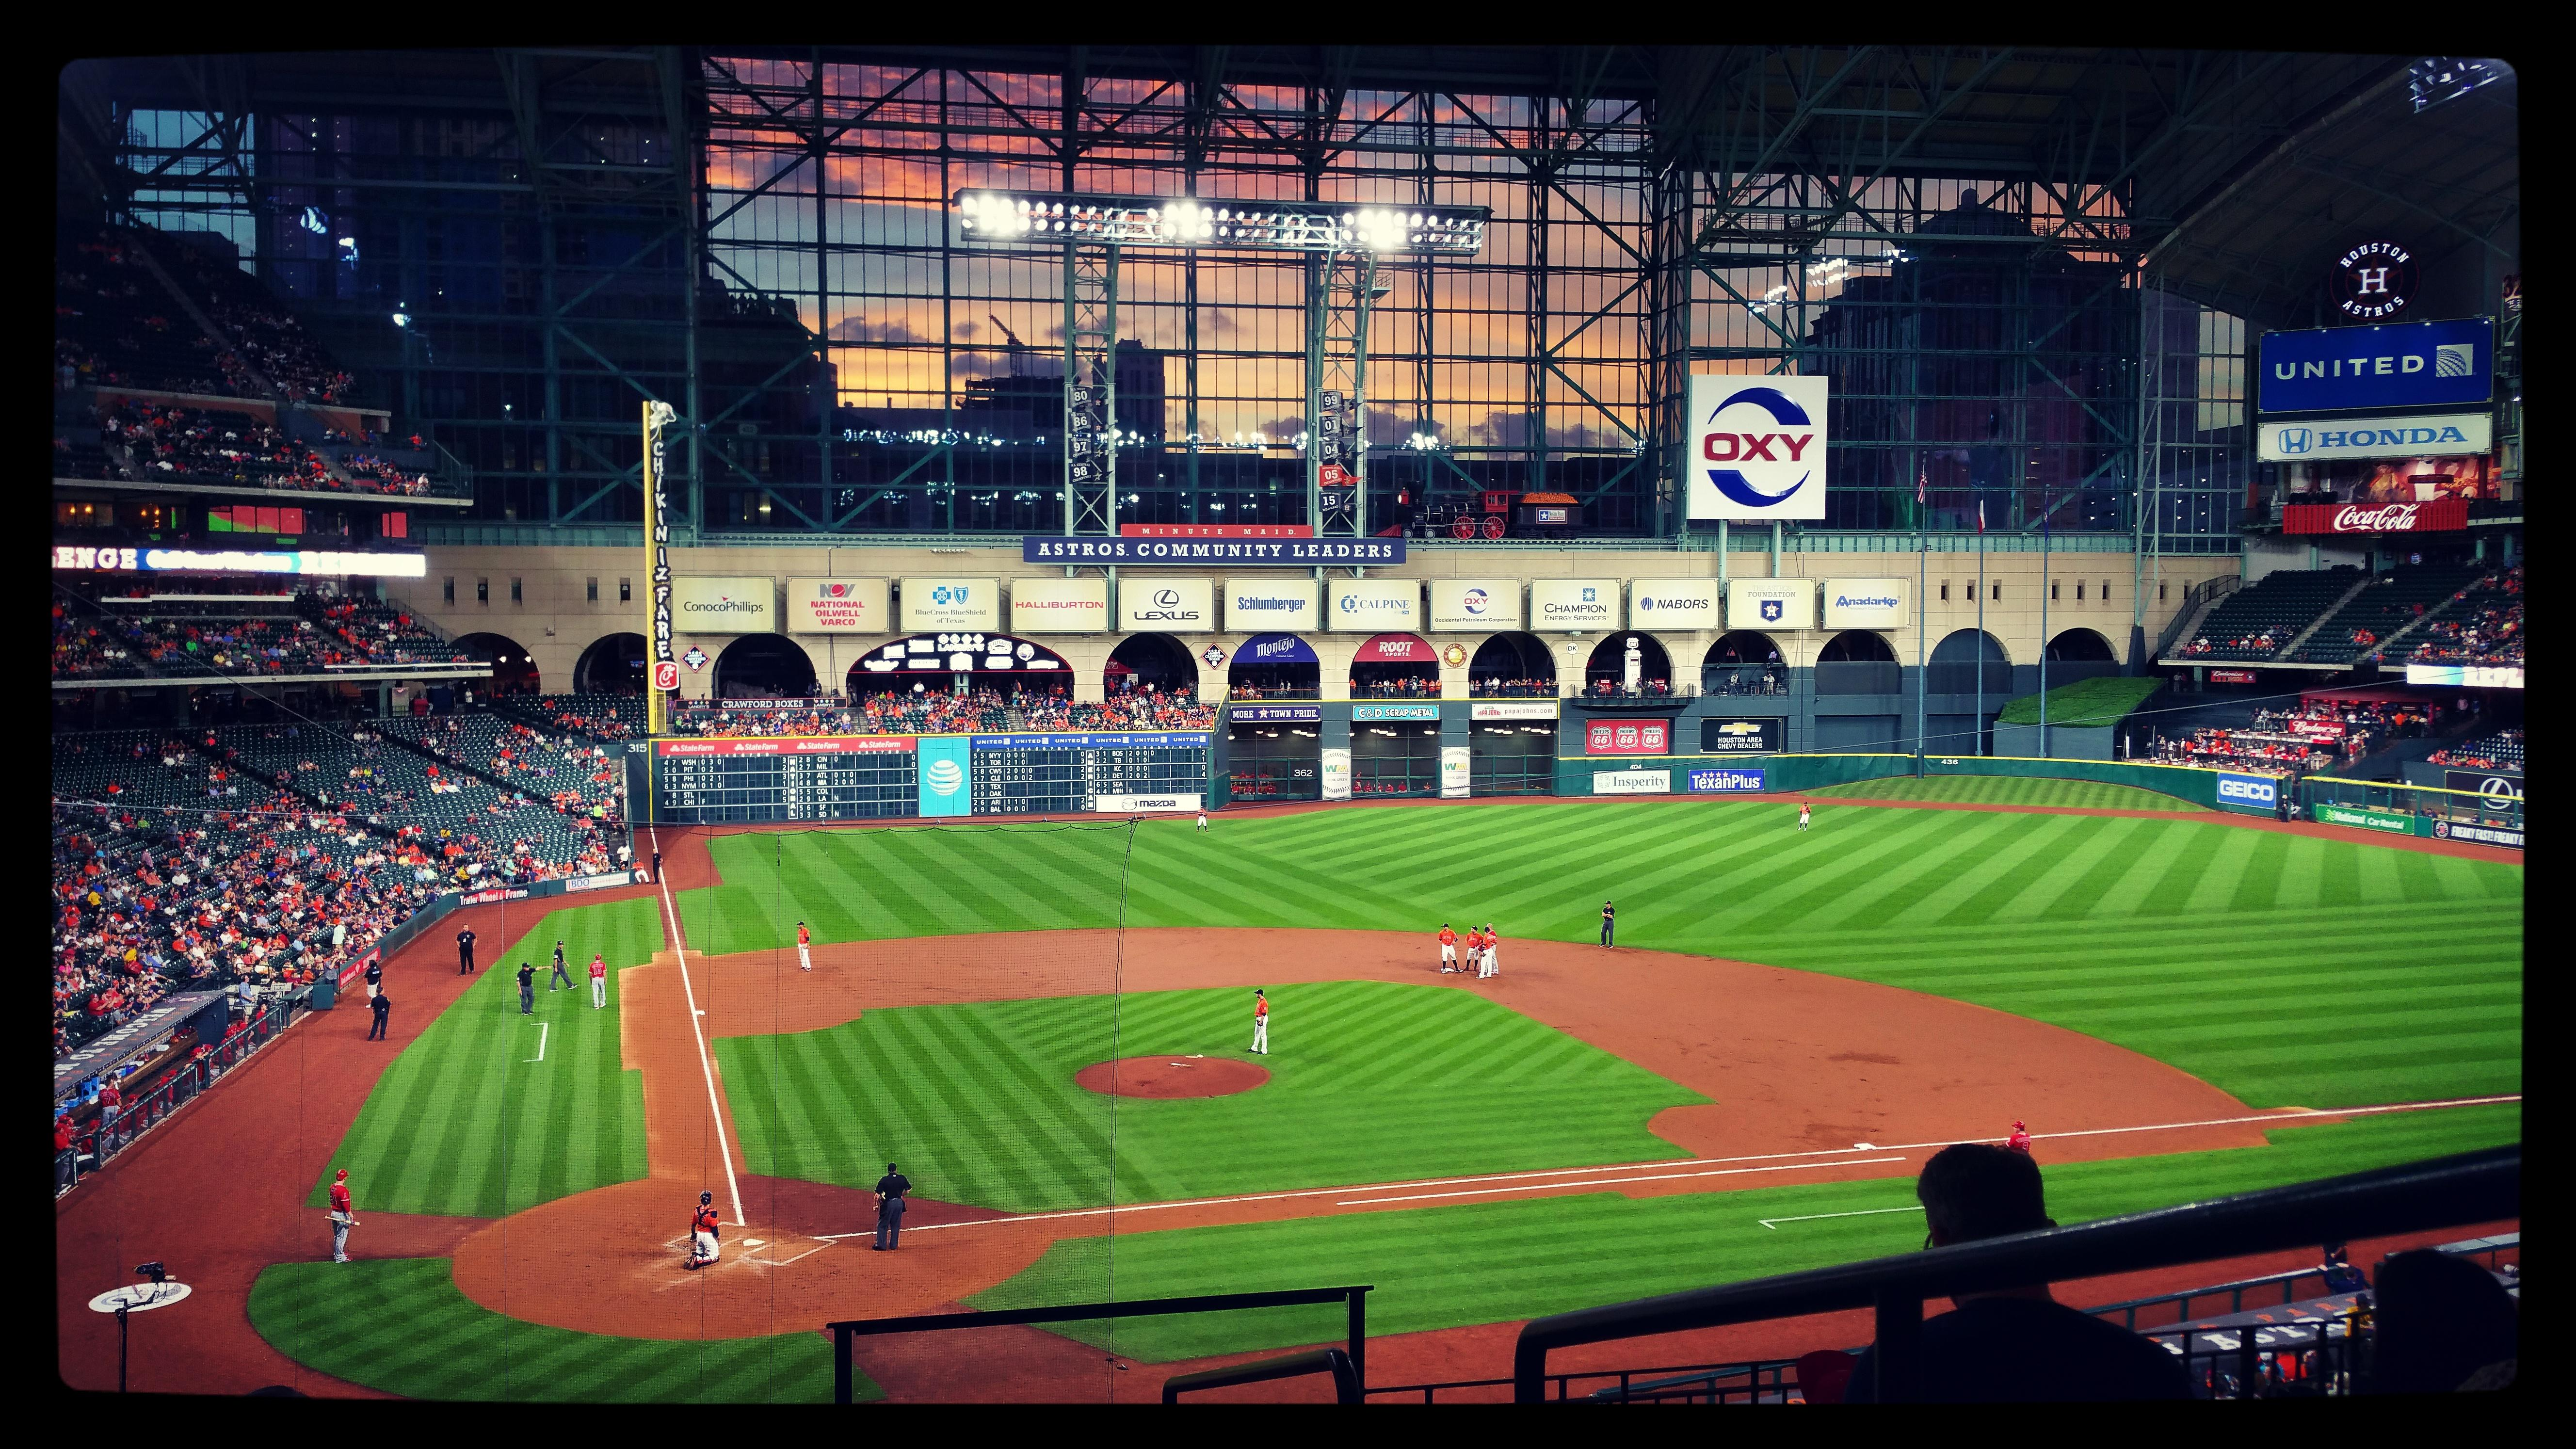 Minute Maid Park Section 222 Row 7 Seat 16